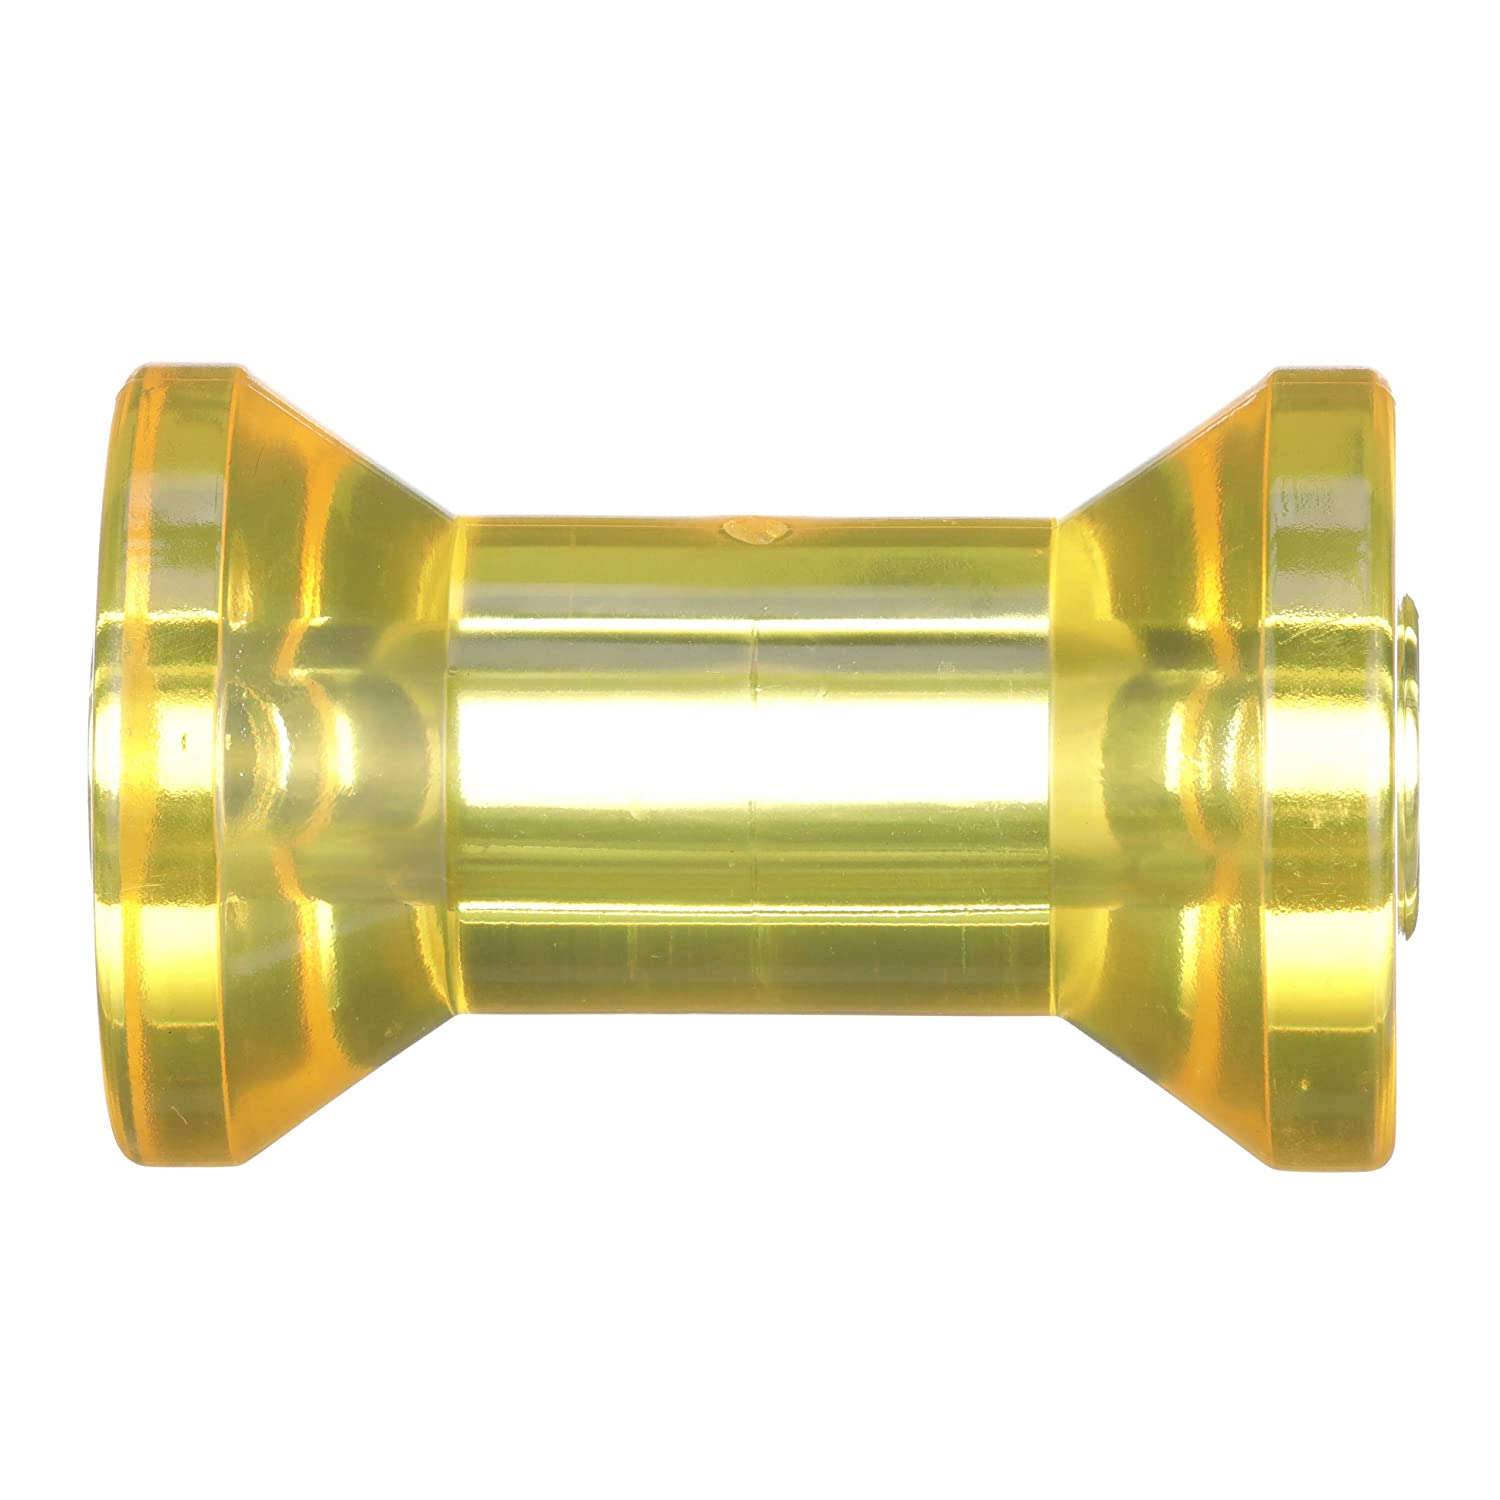 Attwood Spool//Keel Roller Polymer 5 Inches Wide Spool//Keel Roller 11317-1 Polymer 5 Inches Wide